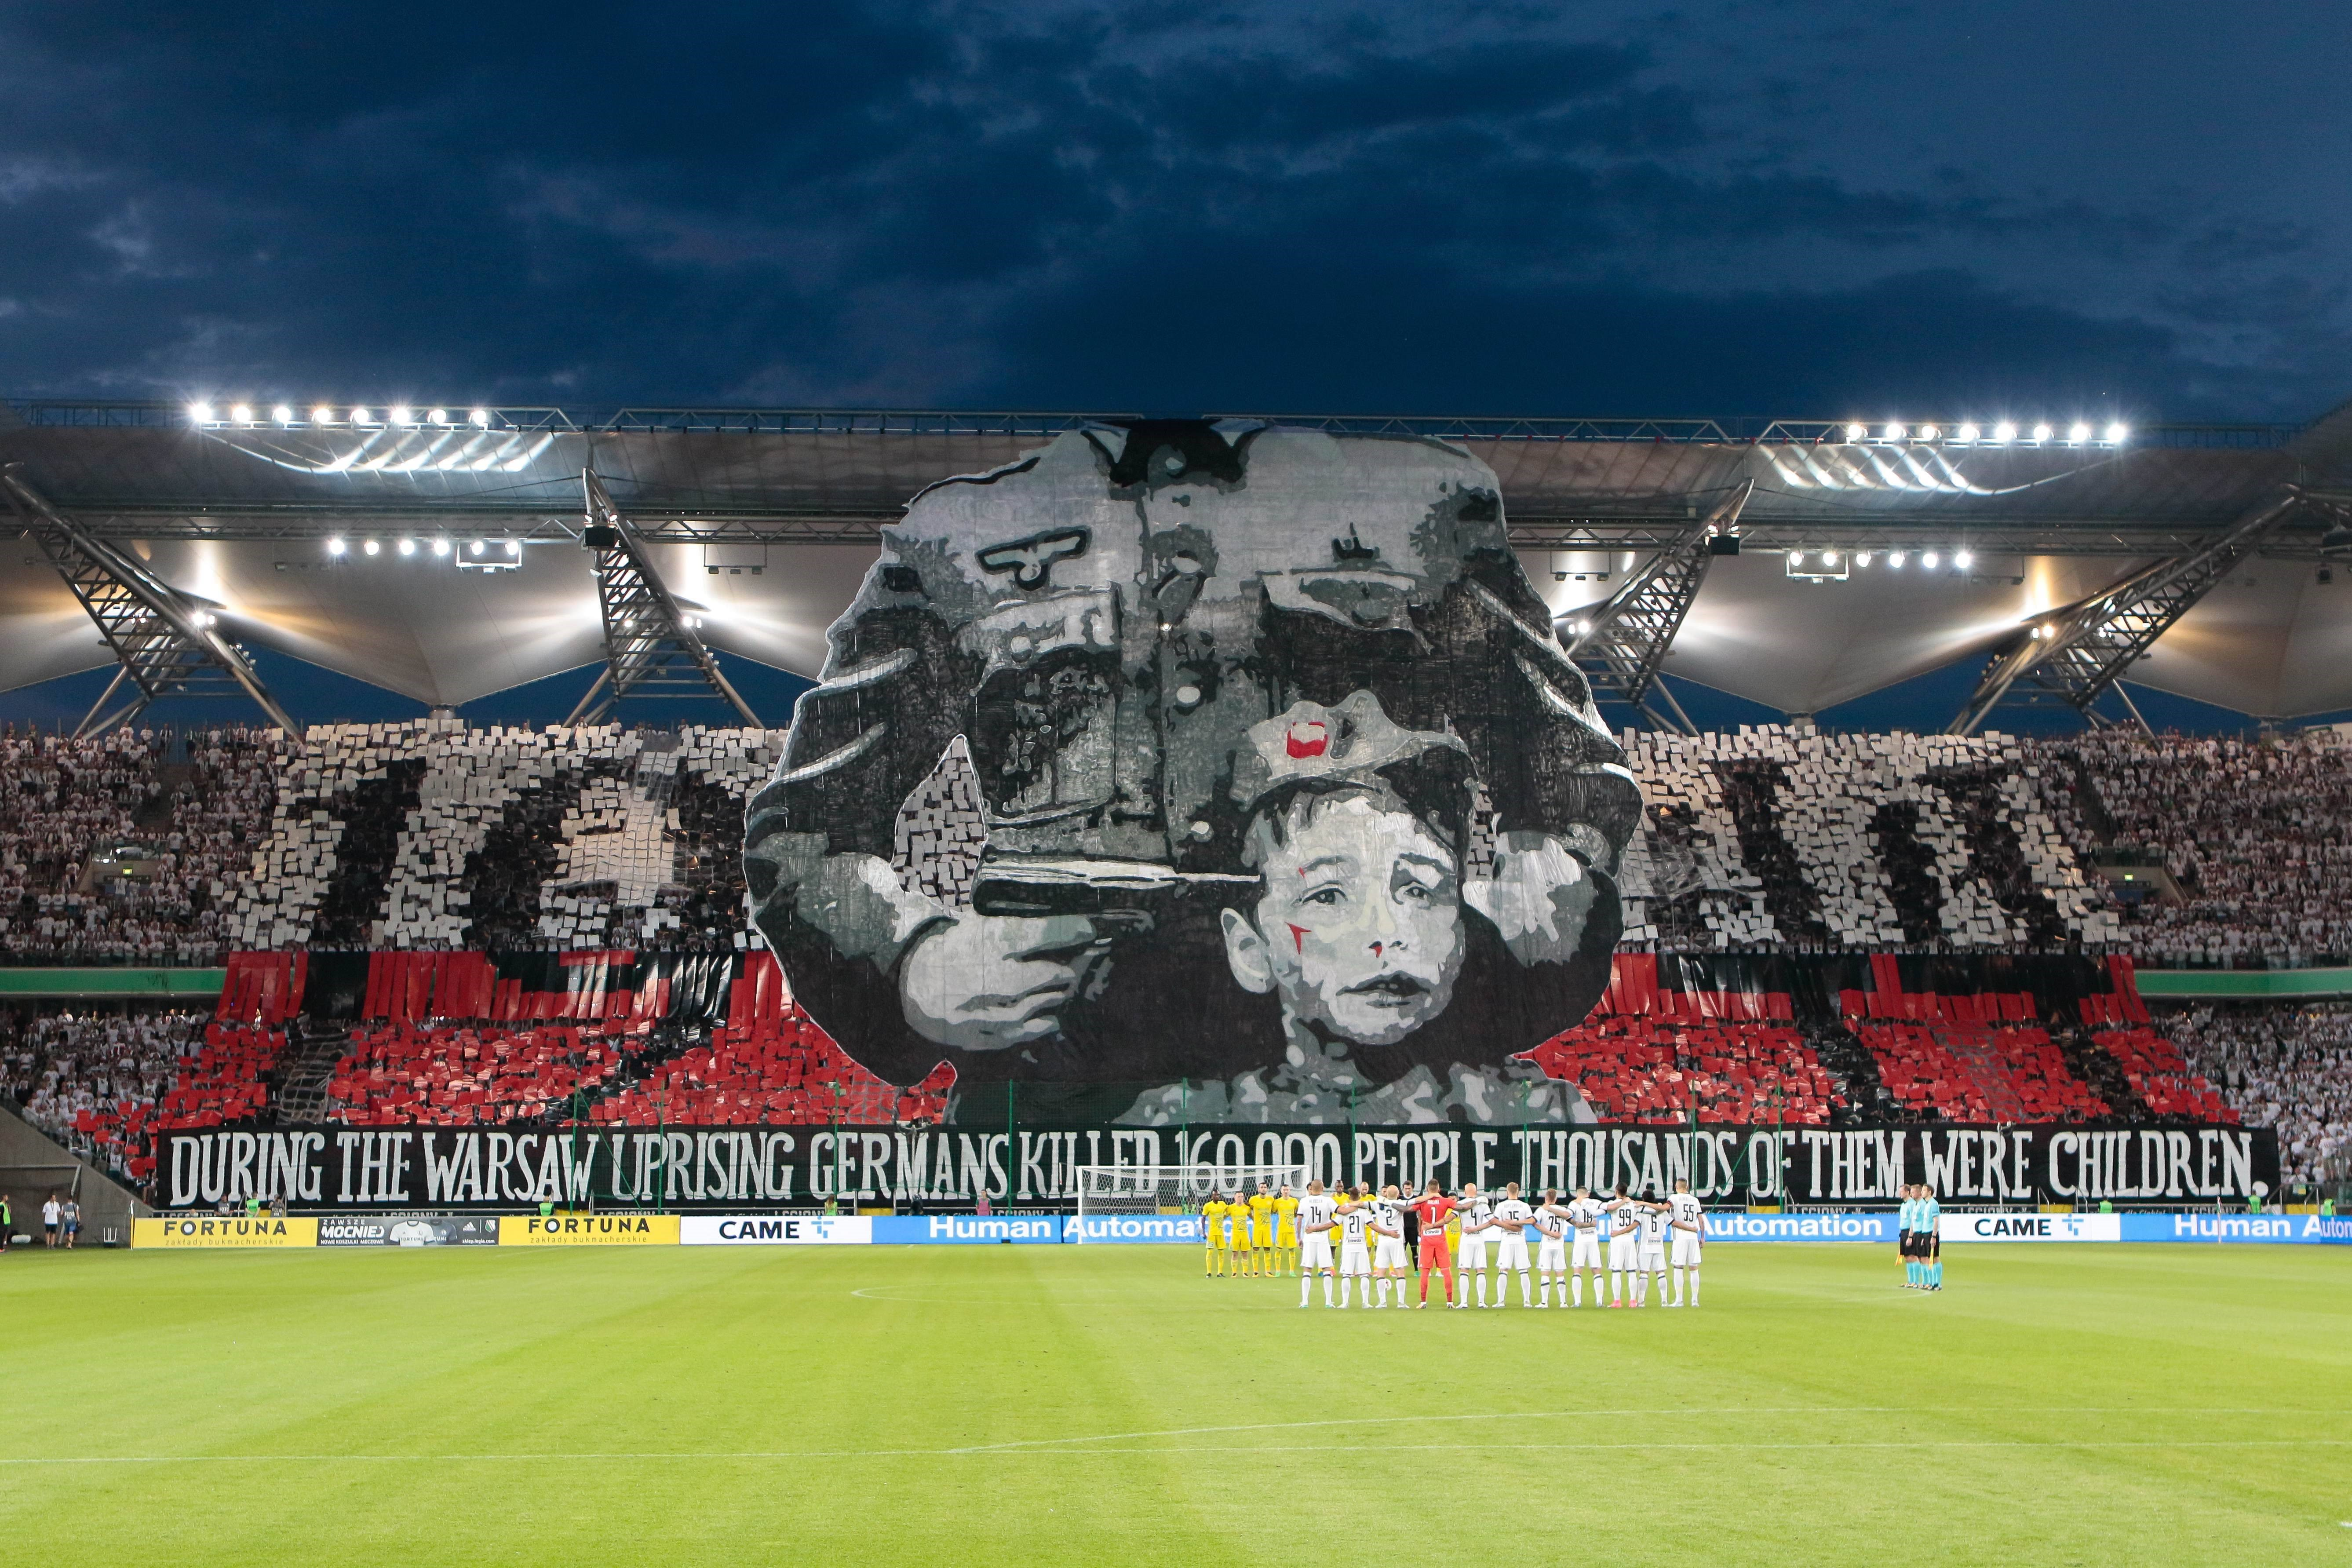 Legia Ultras made greatest banner ever – PUB NOT IN POL